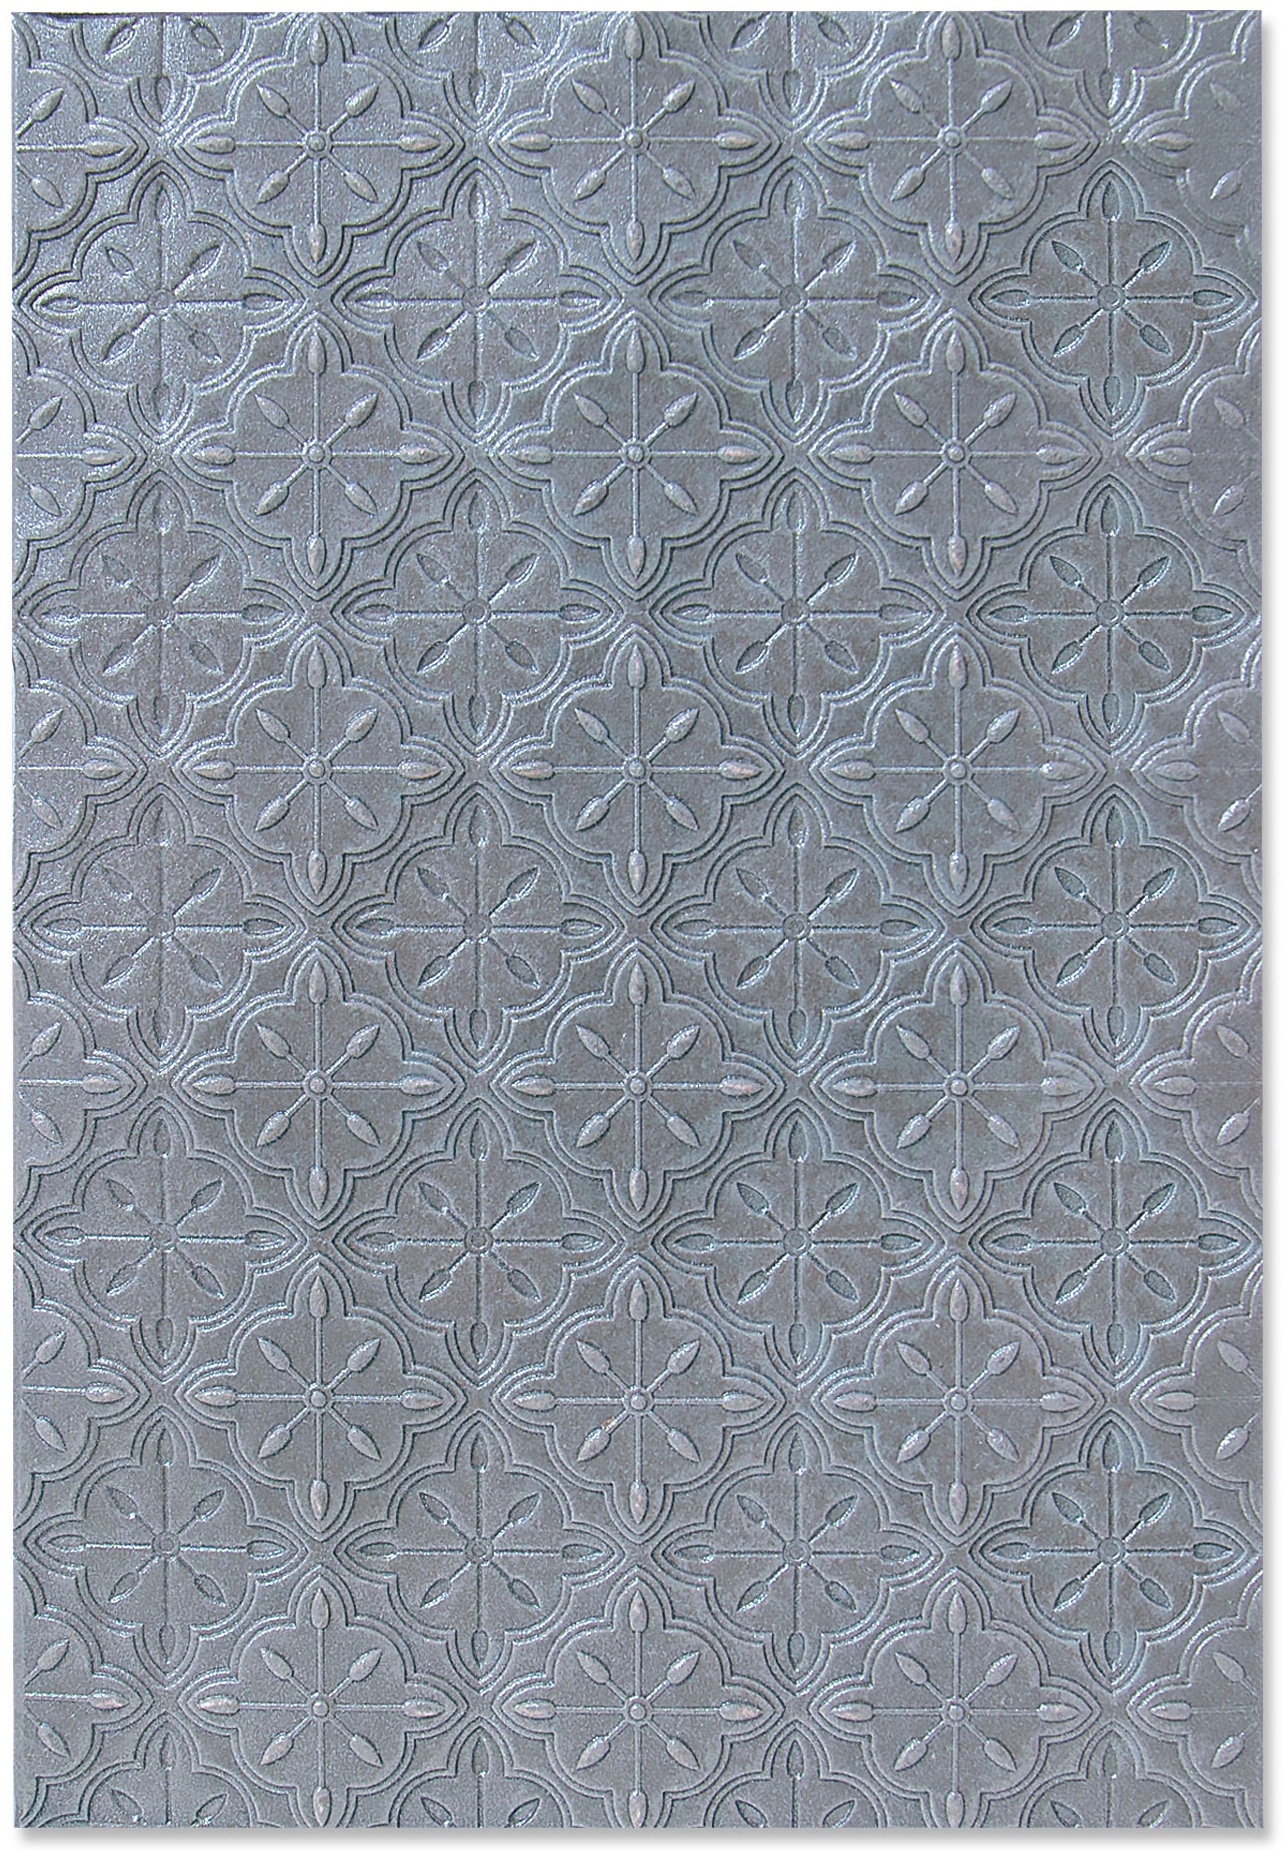 Sizzix 3D Textured Impressions - Tileable By Kath Breen